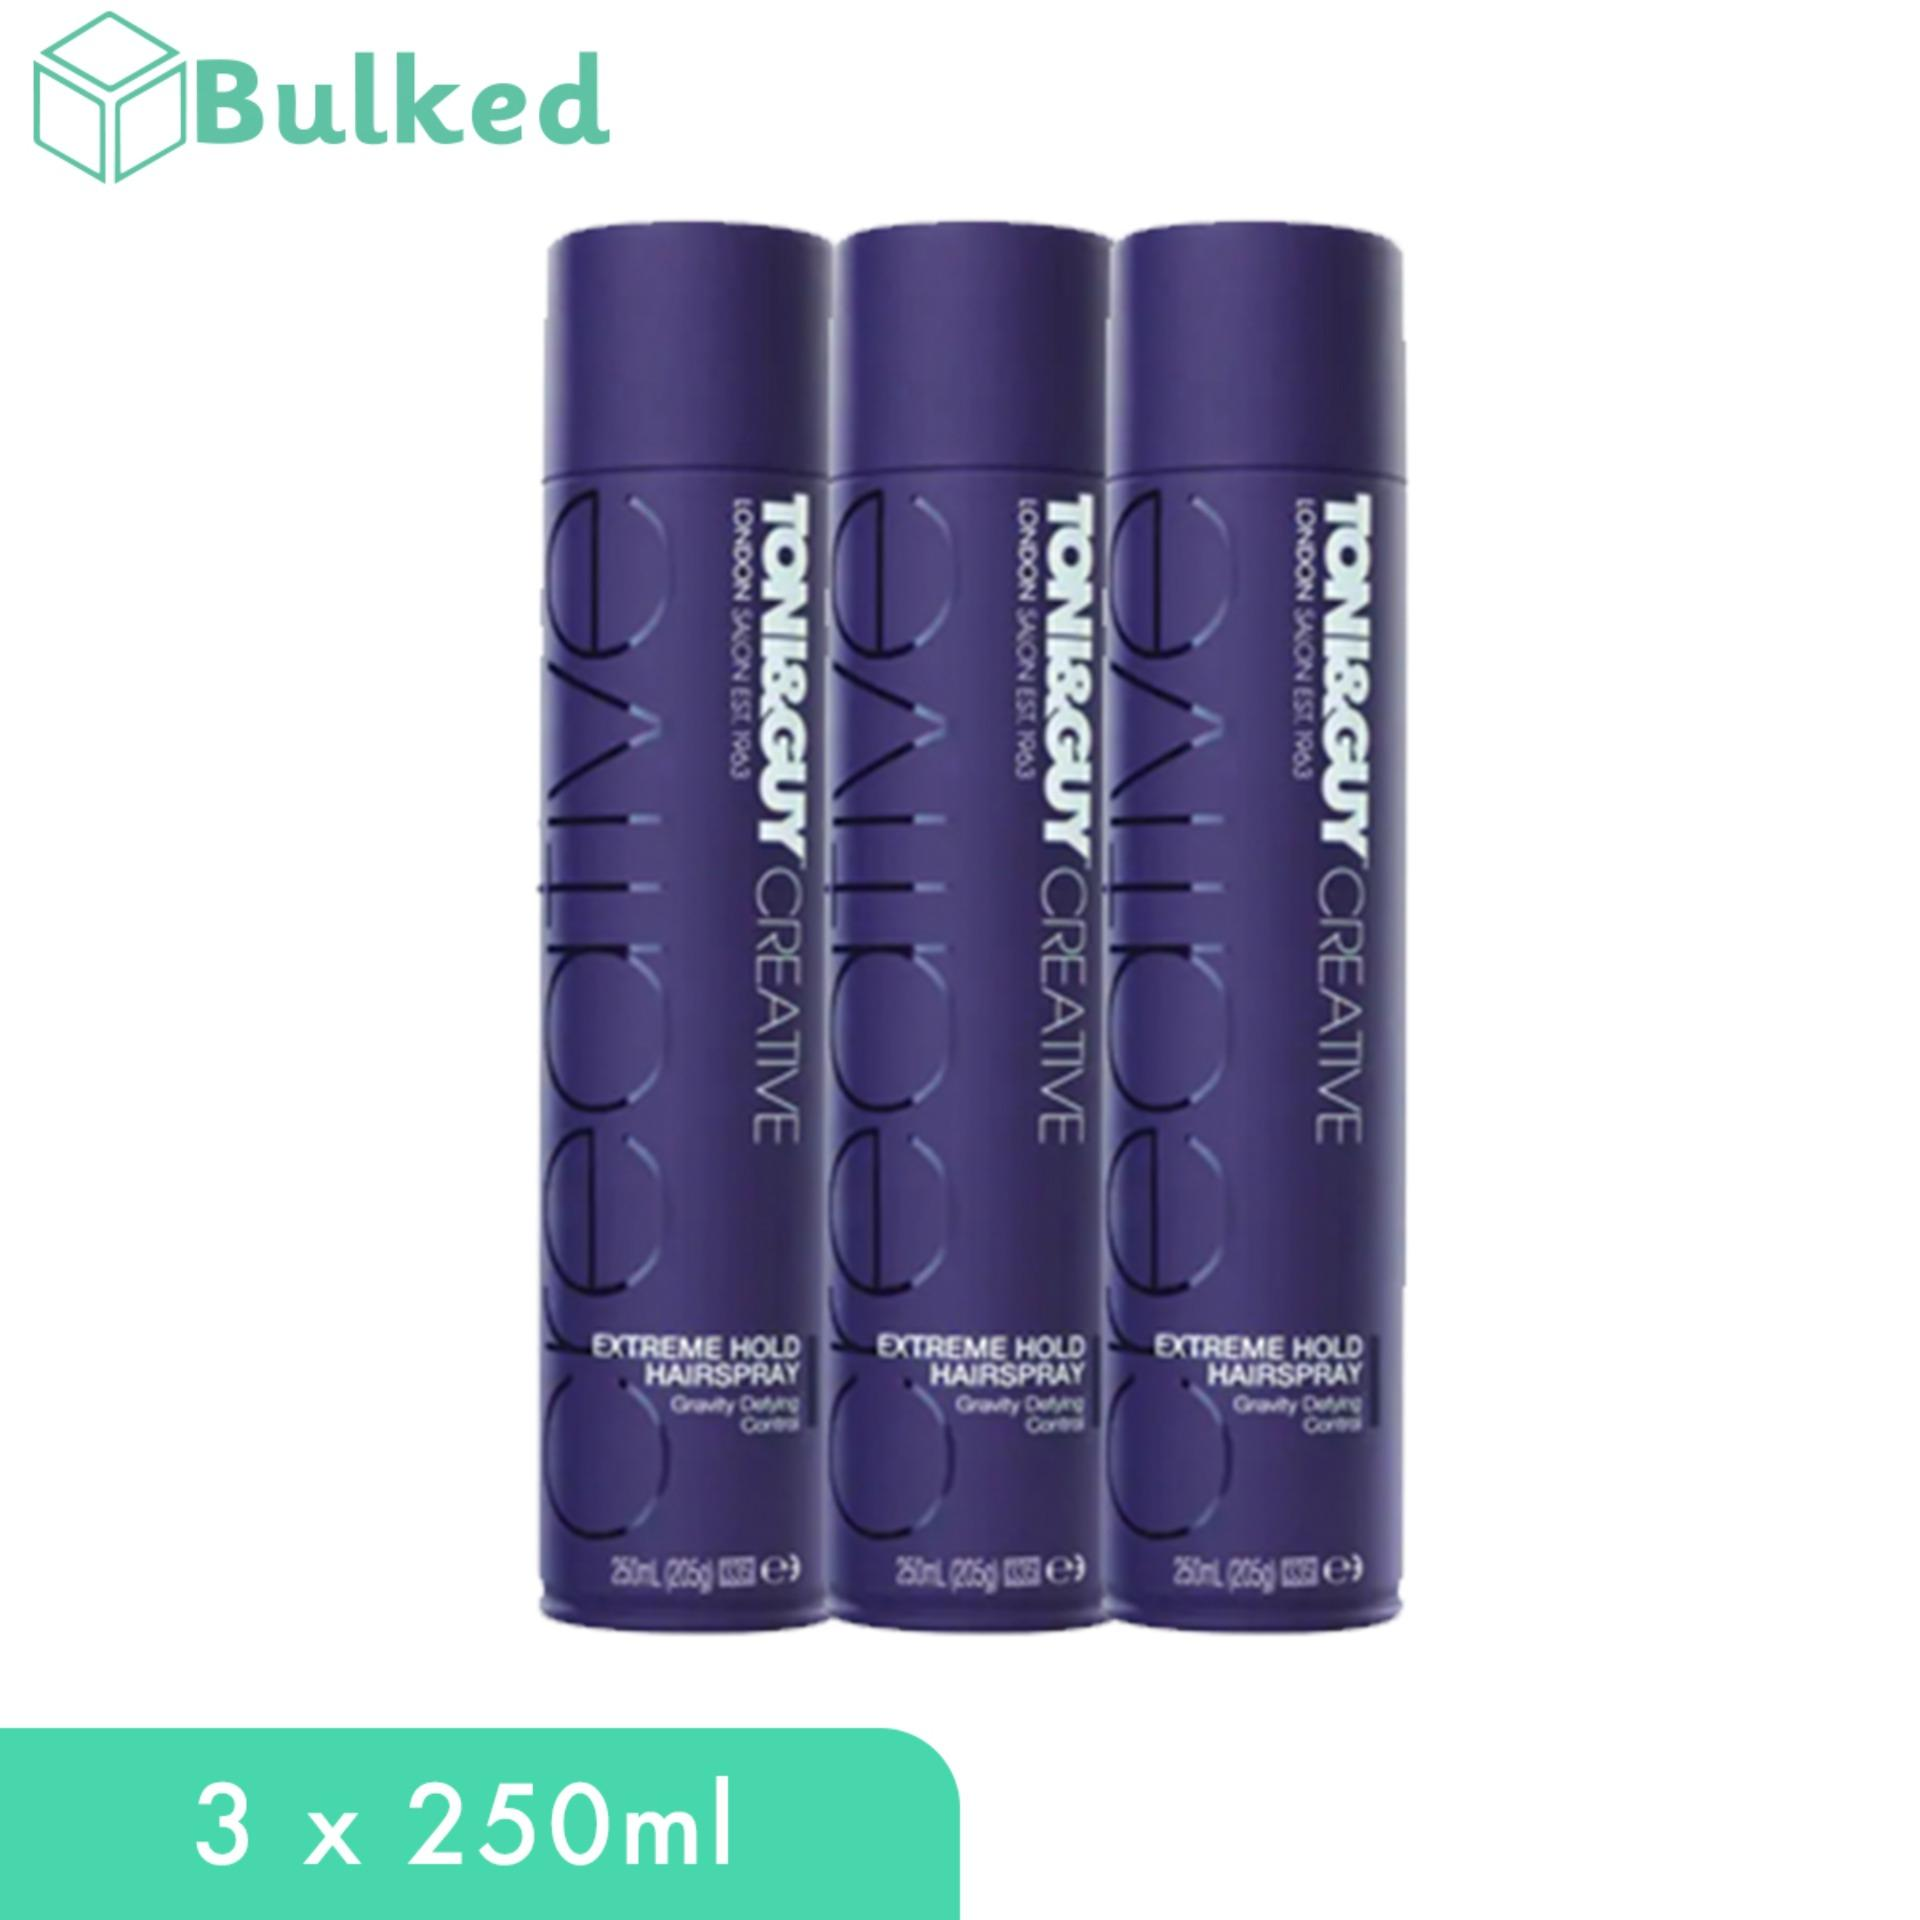 Toni & Guy Creative Extreme Hold Hair Spray (3 X 250ml) By Bulked.